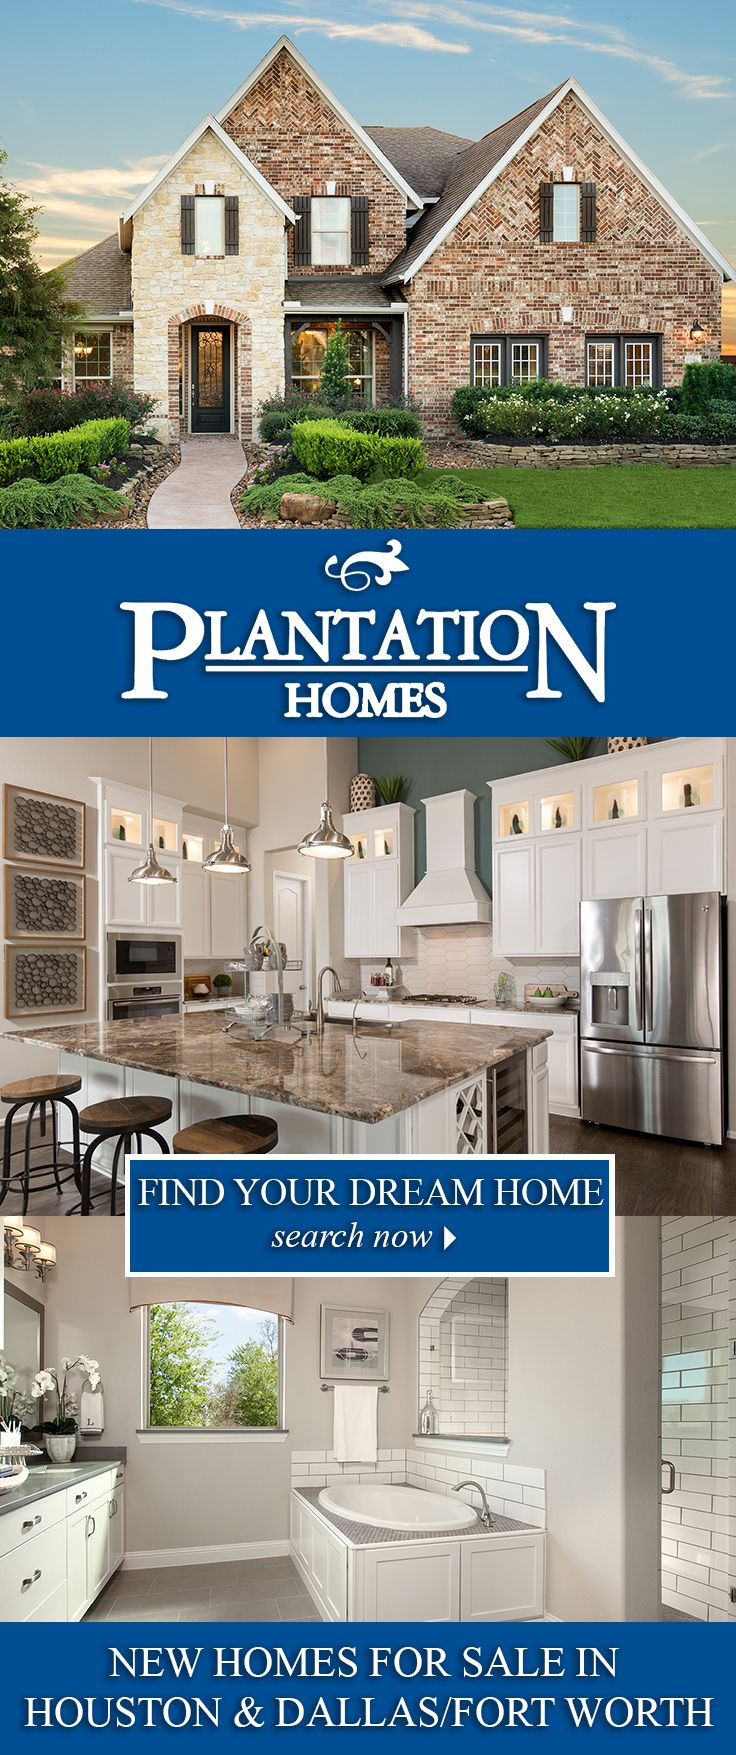 Newhome designs from Plantation Homes serve as the